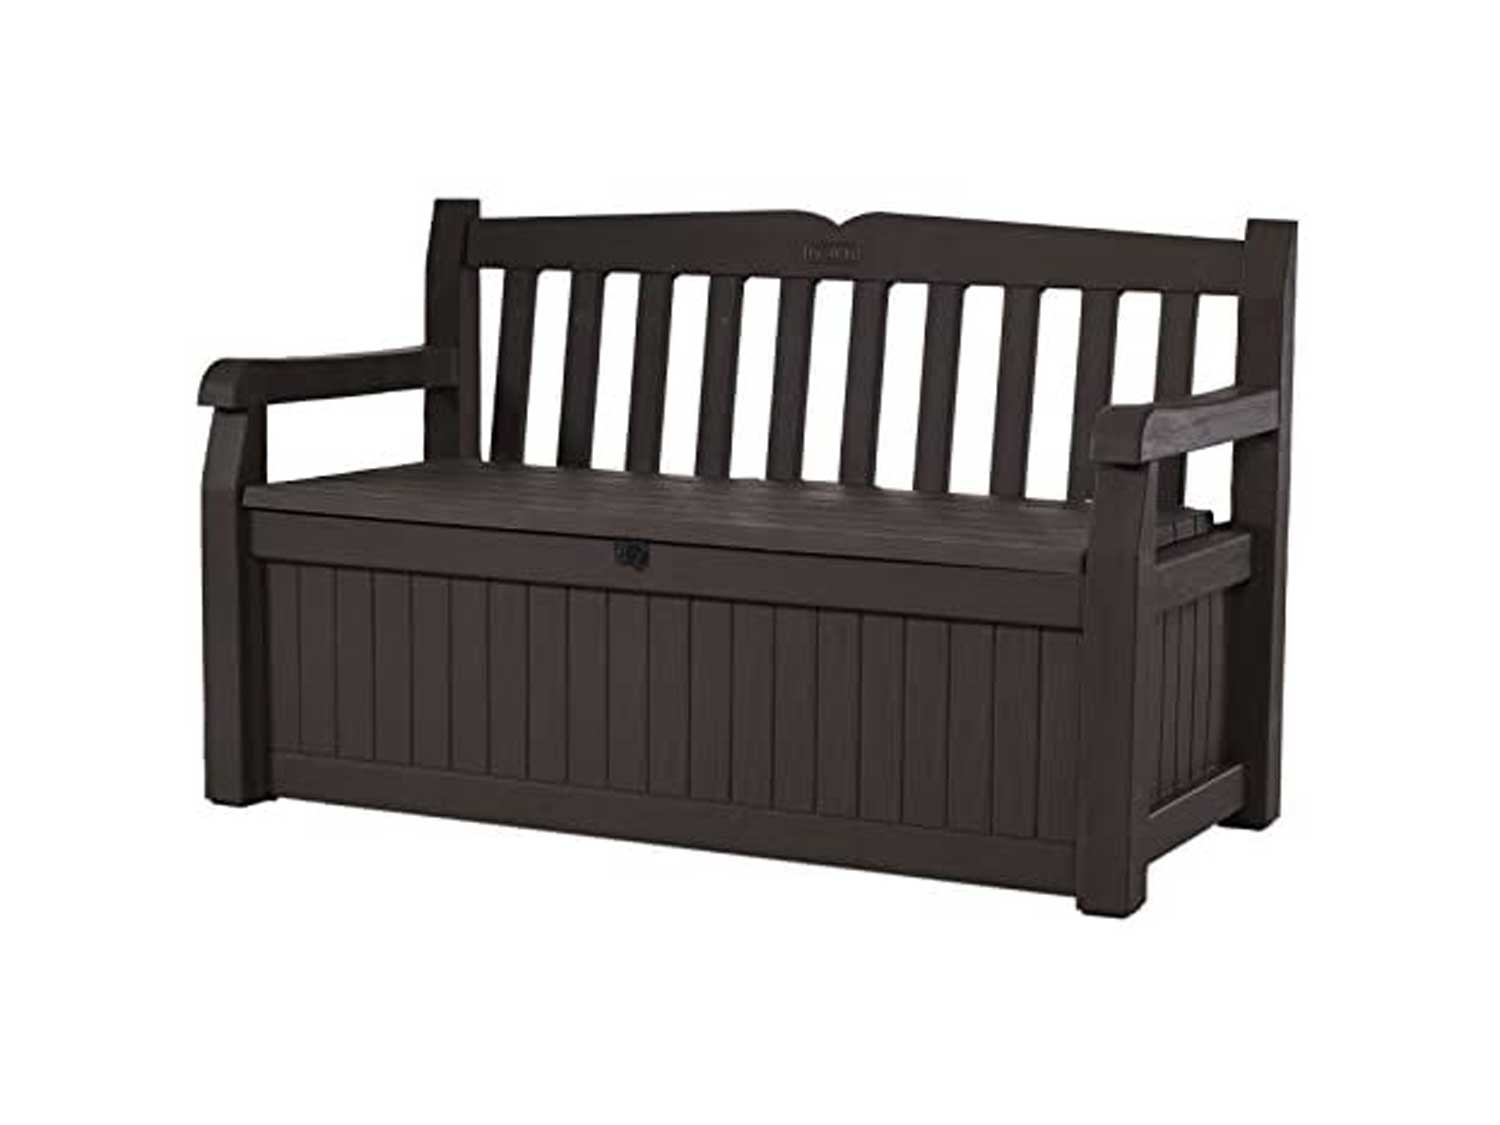 Keter Eden 70 Gallon Storage Bench Deck Box for Patio Furniture, Front Porch Decor and Outdoor Seating – Perfect to Store Garden Tools and Pool Toys